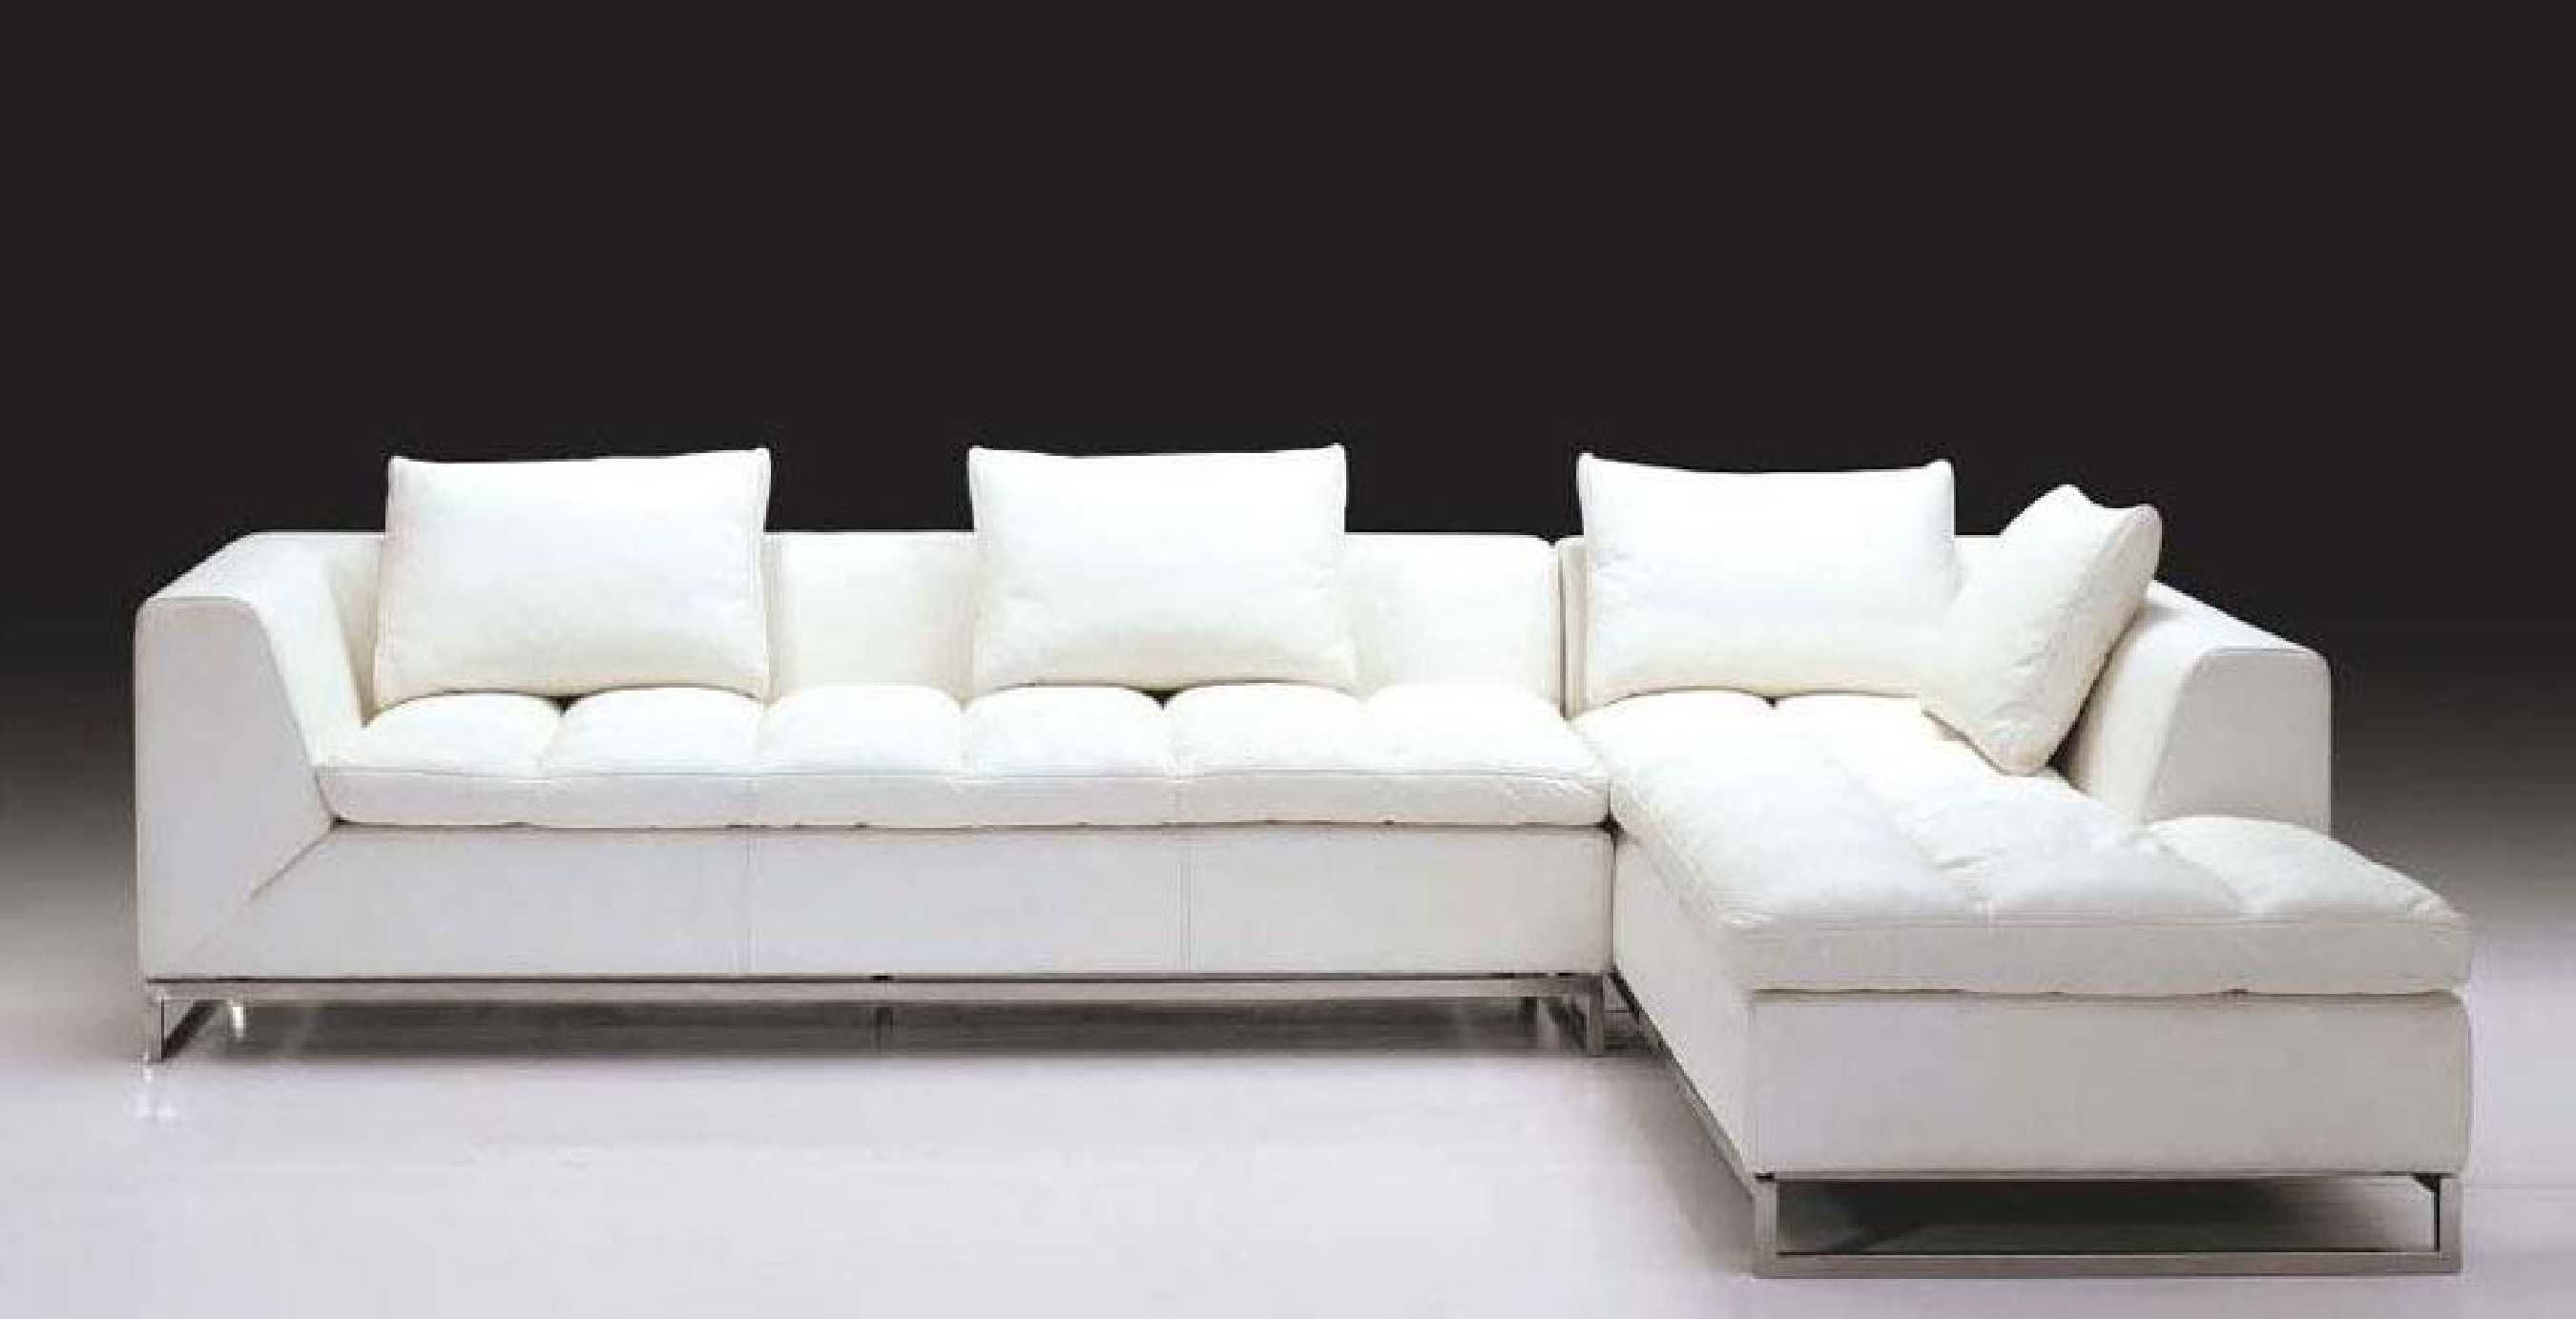 incredible sofa slipcovers cheap image-Finest sofa Slipcovers Cheap Gallery